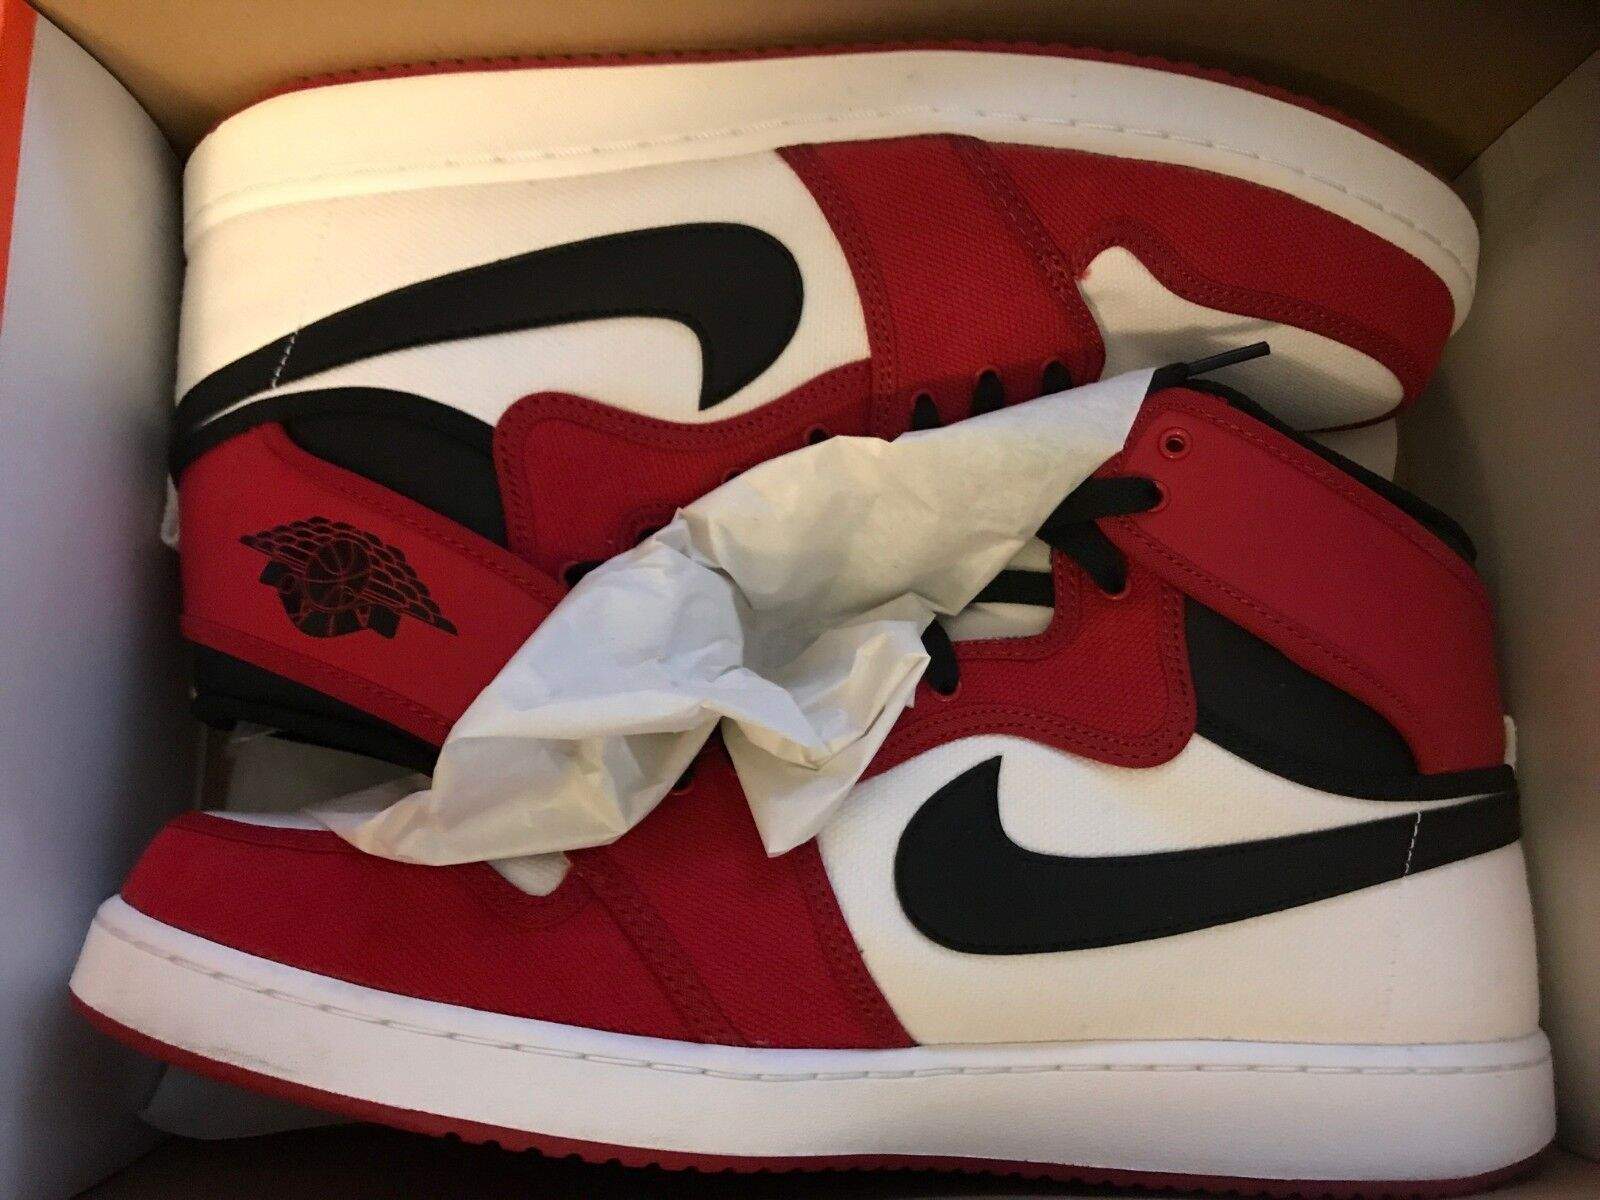 air jordan retro 1 high KO size 14 worn once for 20 minutes